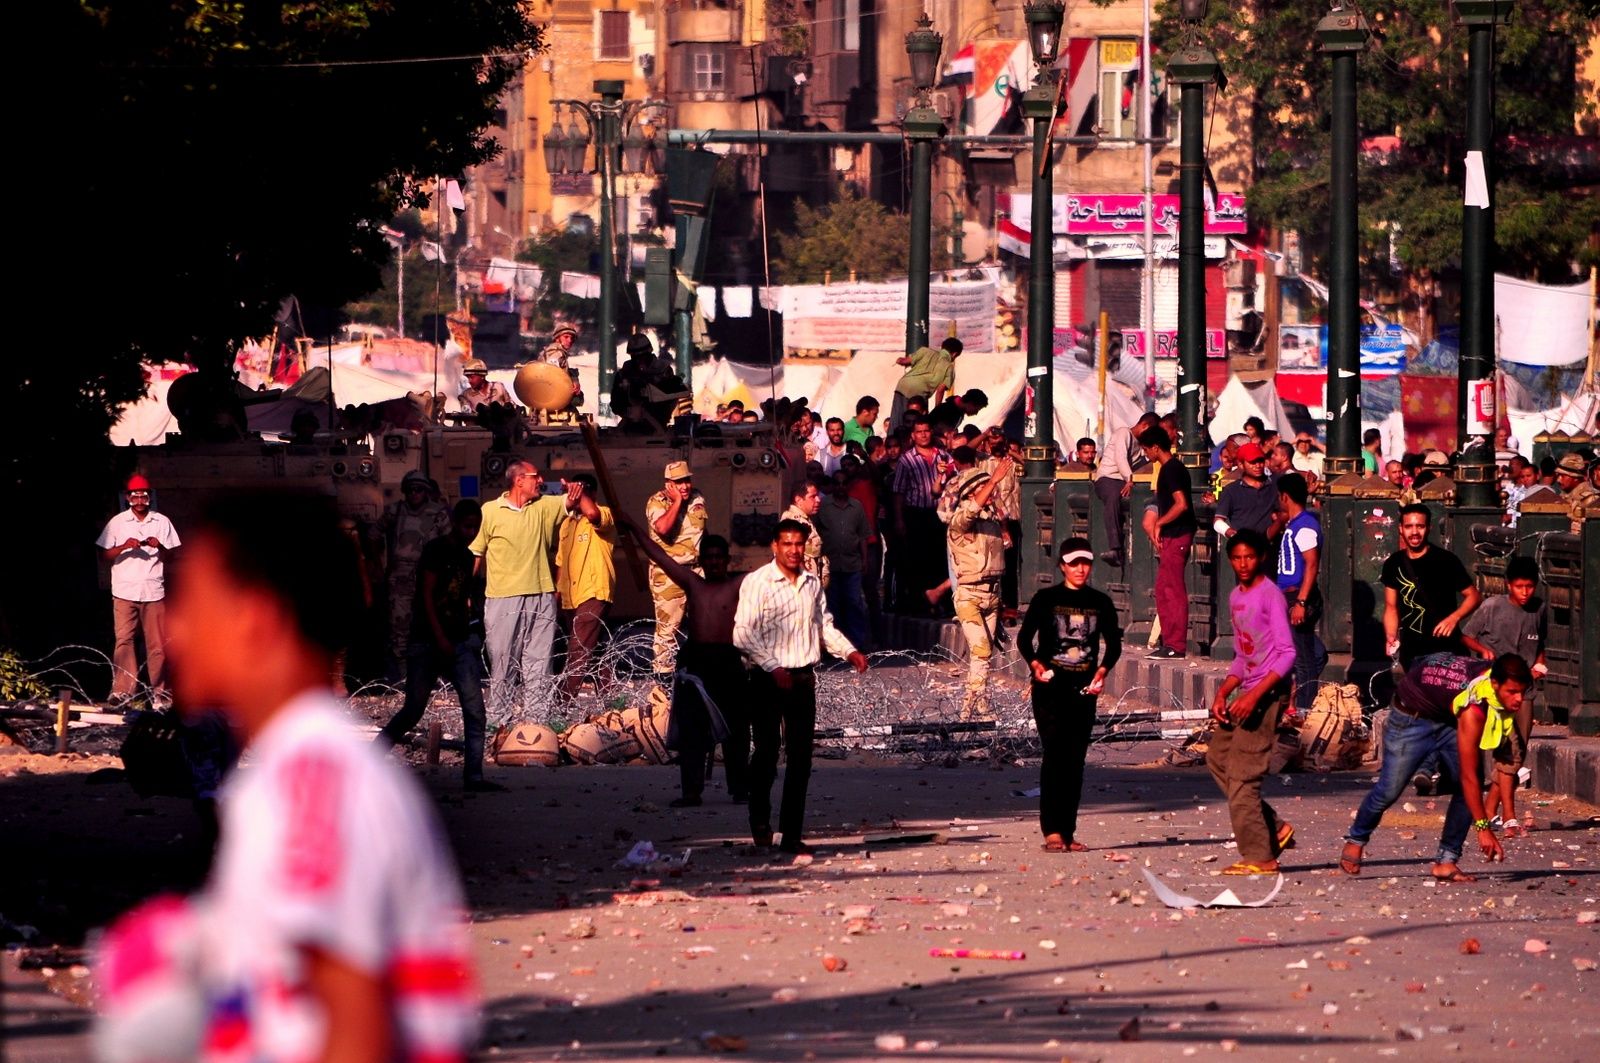 Clashes erupted late Monday afternoon in the Cairo neighbourhood of Garden City along the Corniche and in front of the British and American Embassies between pro- and anti-Morsi demonstrators (Photo by Aaron T. Rose)